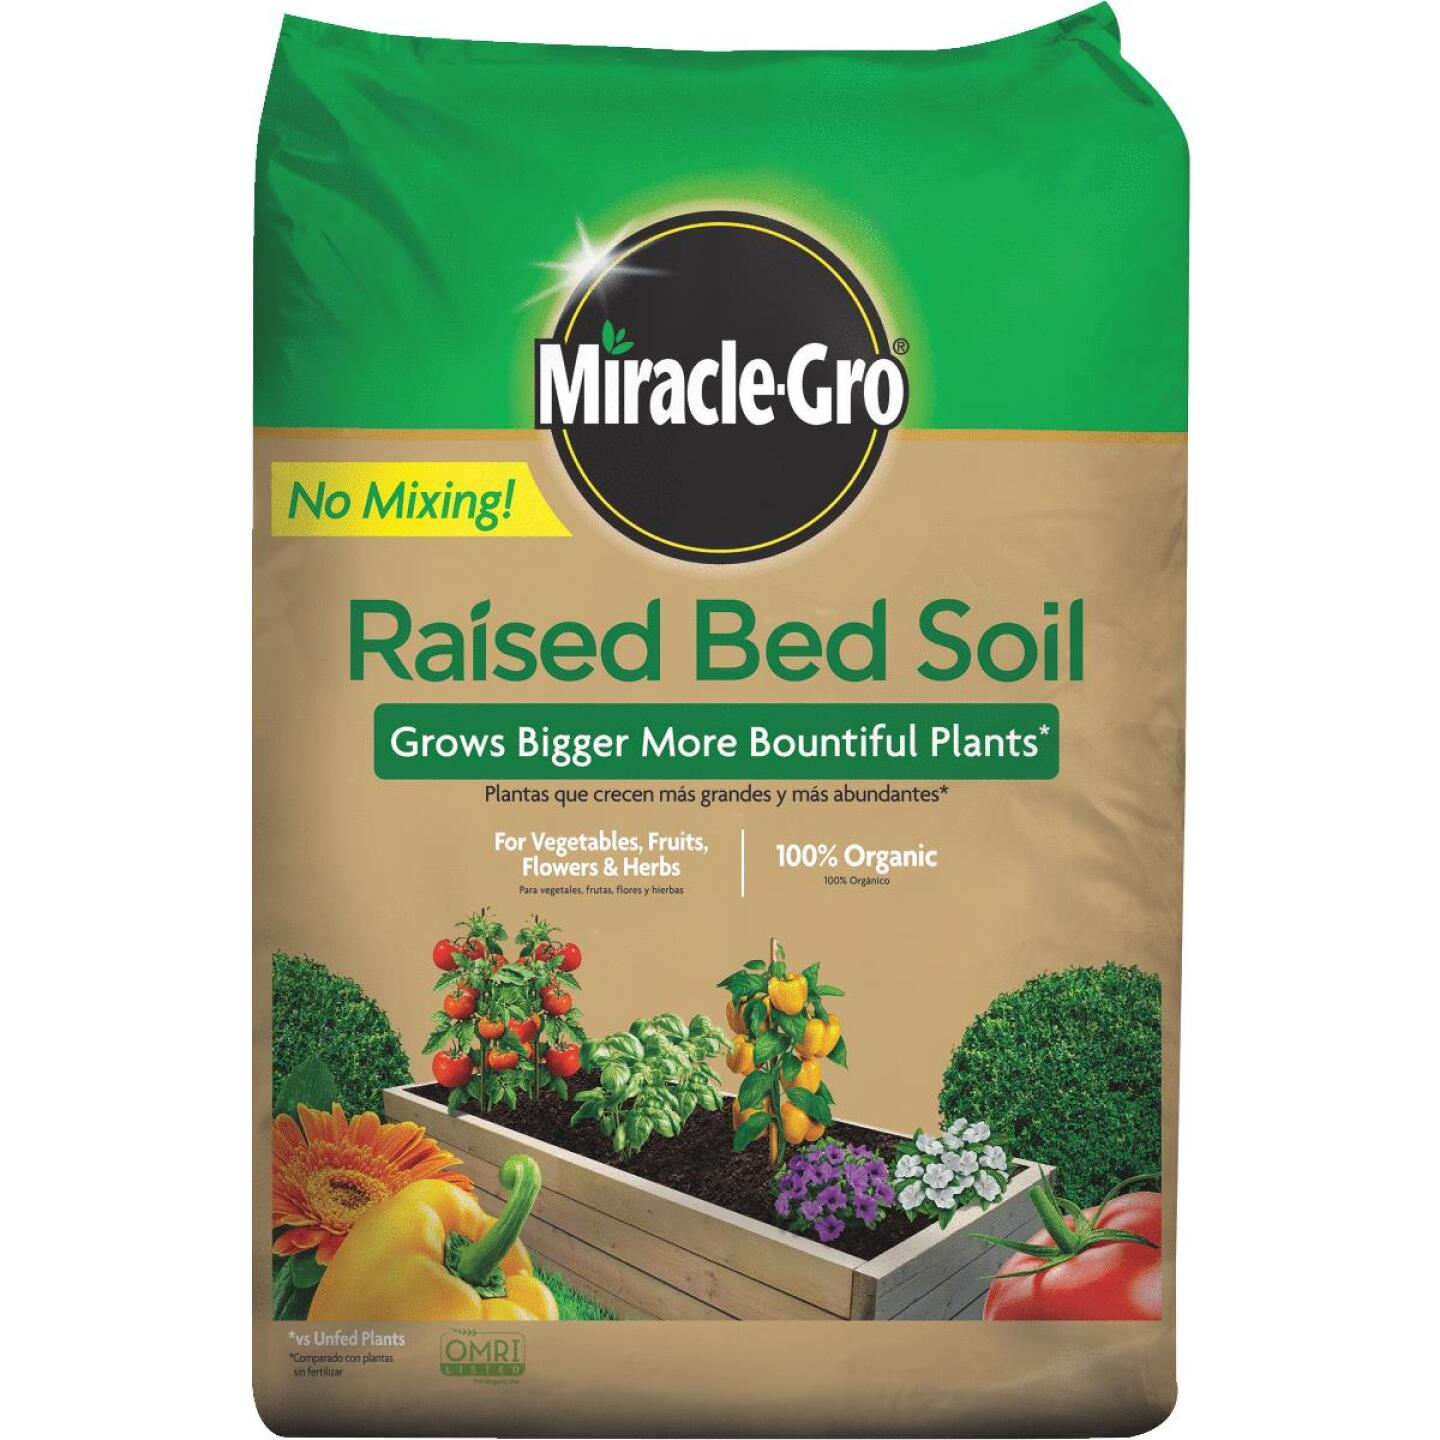 Miracle-Gro 1.5 Cu. Ft. 25 Lb. Raised Bed All-Purpose Garden Soil Image 1